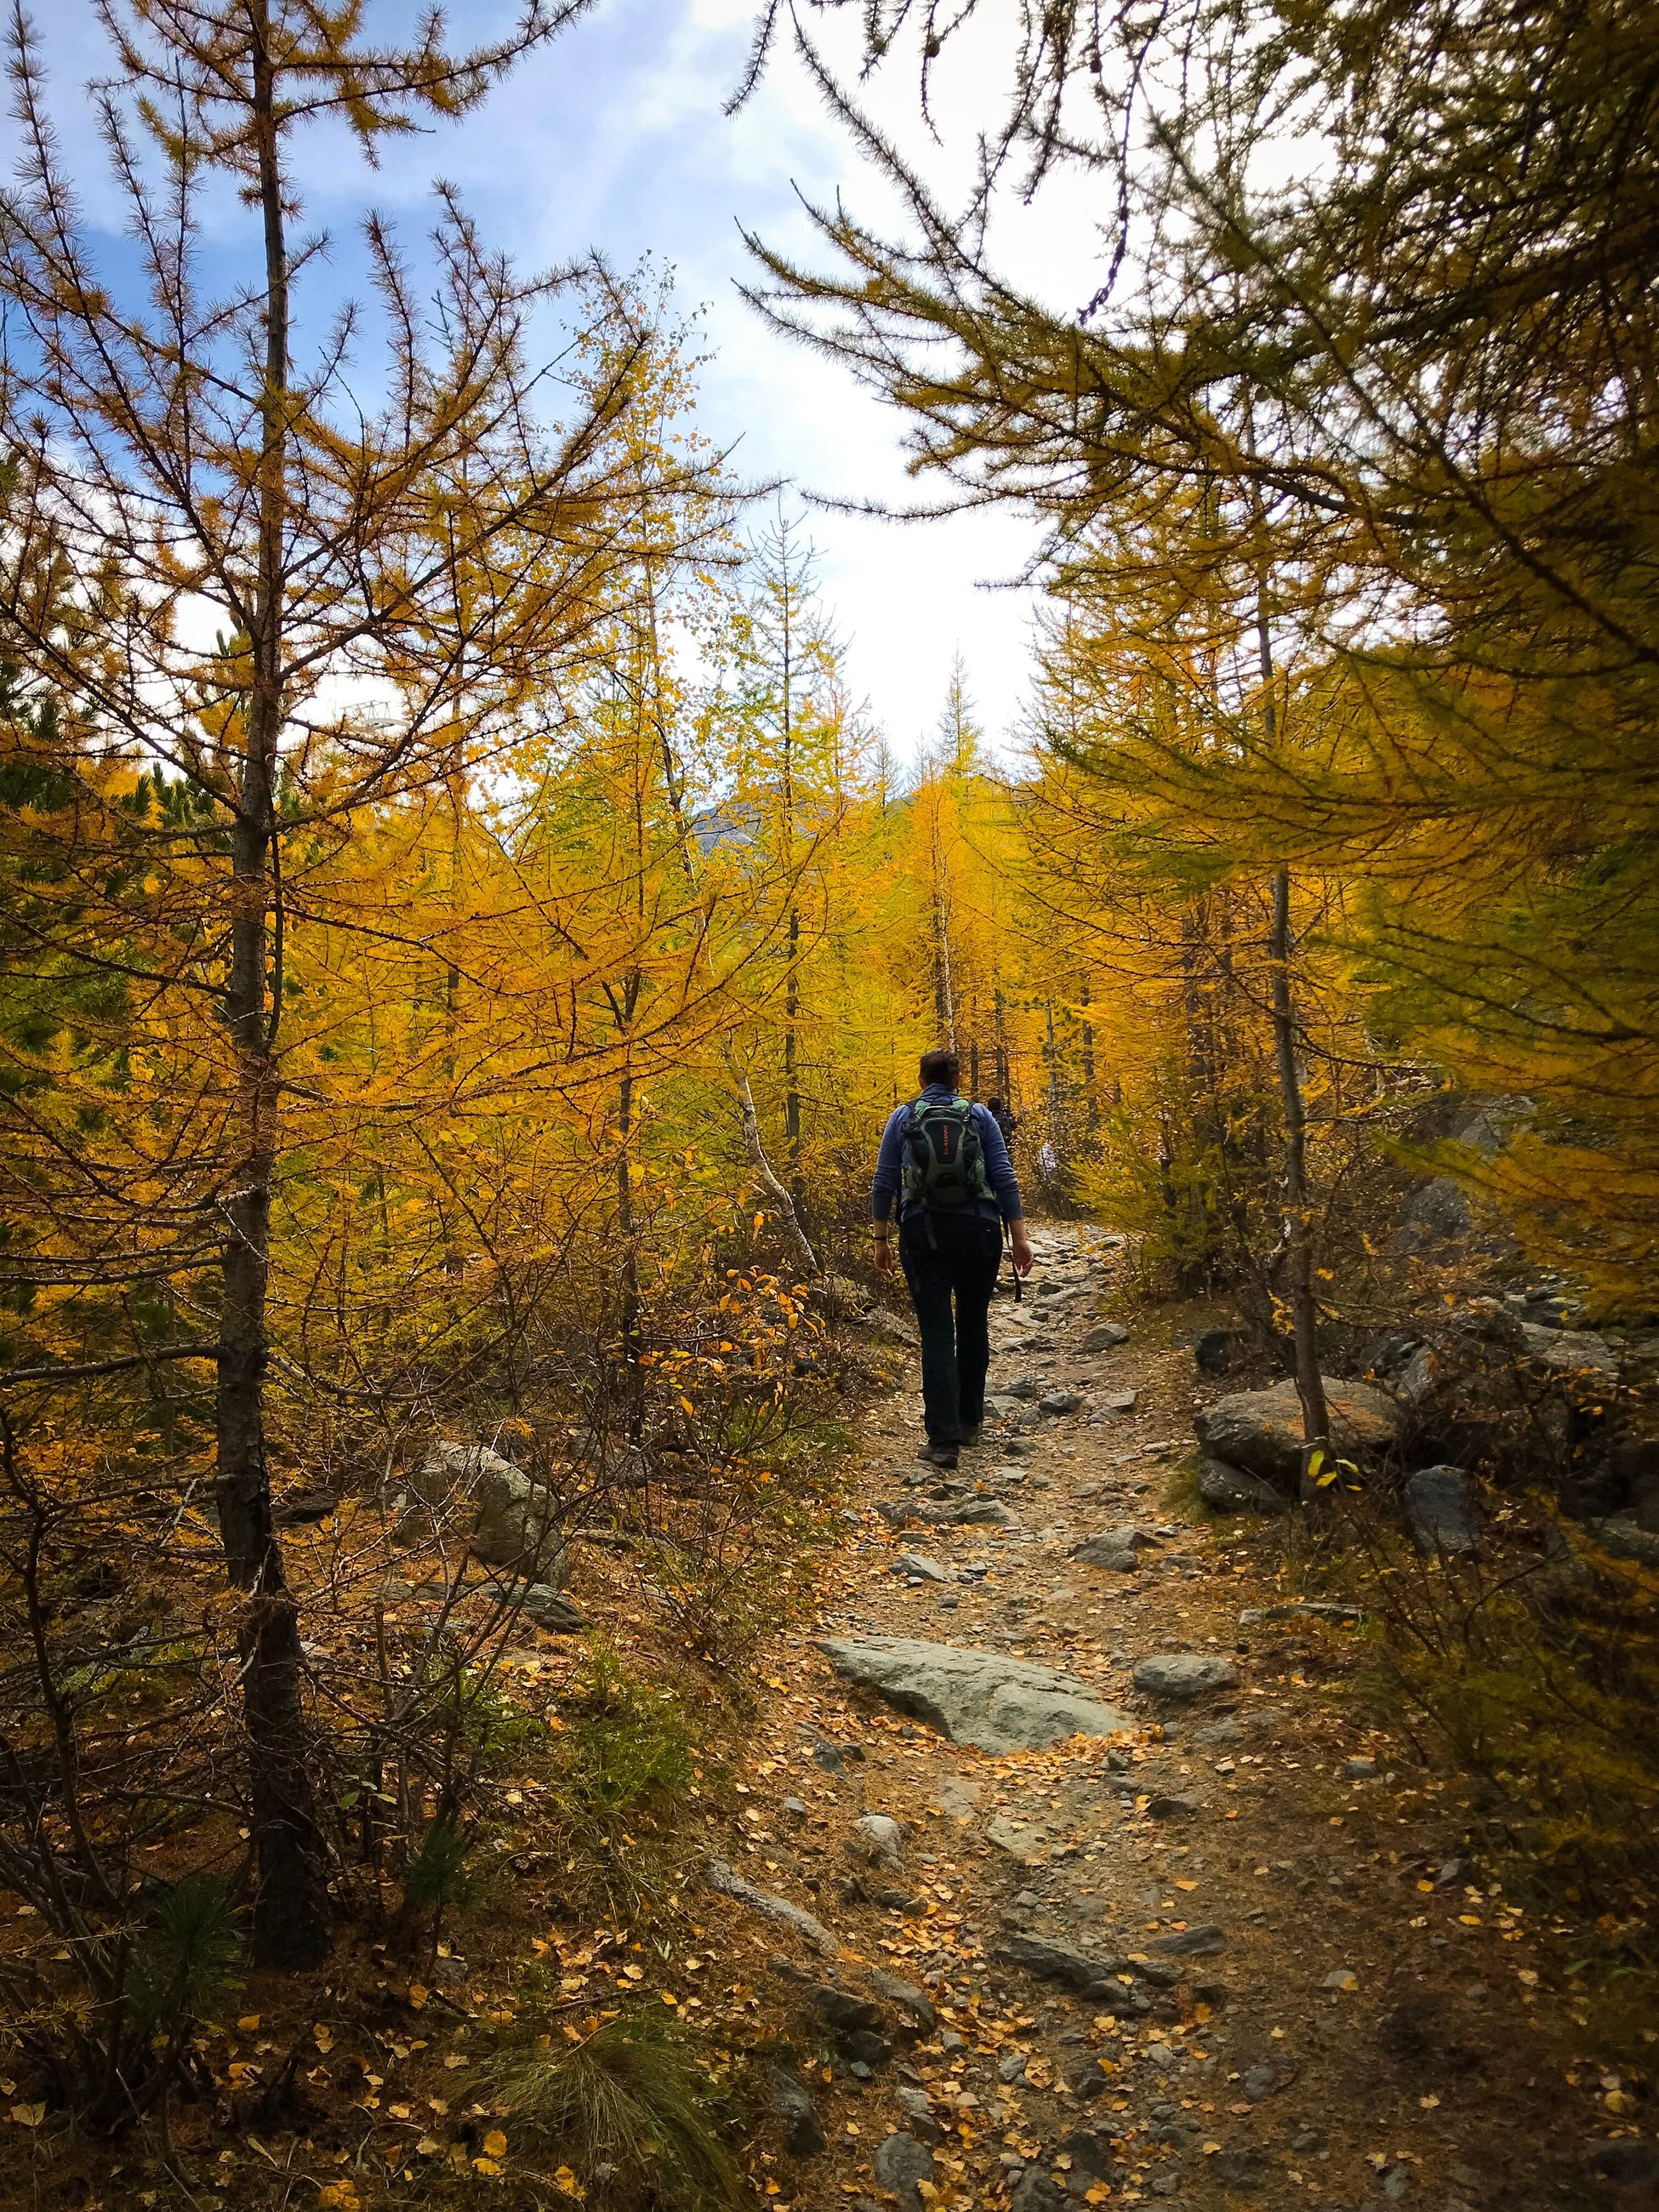 tree, forest, full length, one person, autumn, walking, nature, beauty in nature, rear view, outdoors, tranquil scene, scenics, leisure activity, day, real people, hiking, tranquility, lifestyles, sky, landscape, men, people